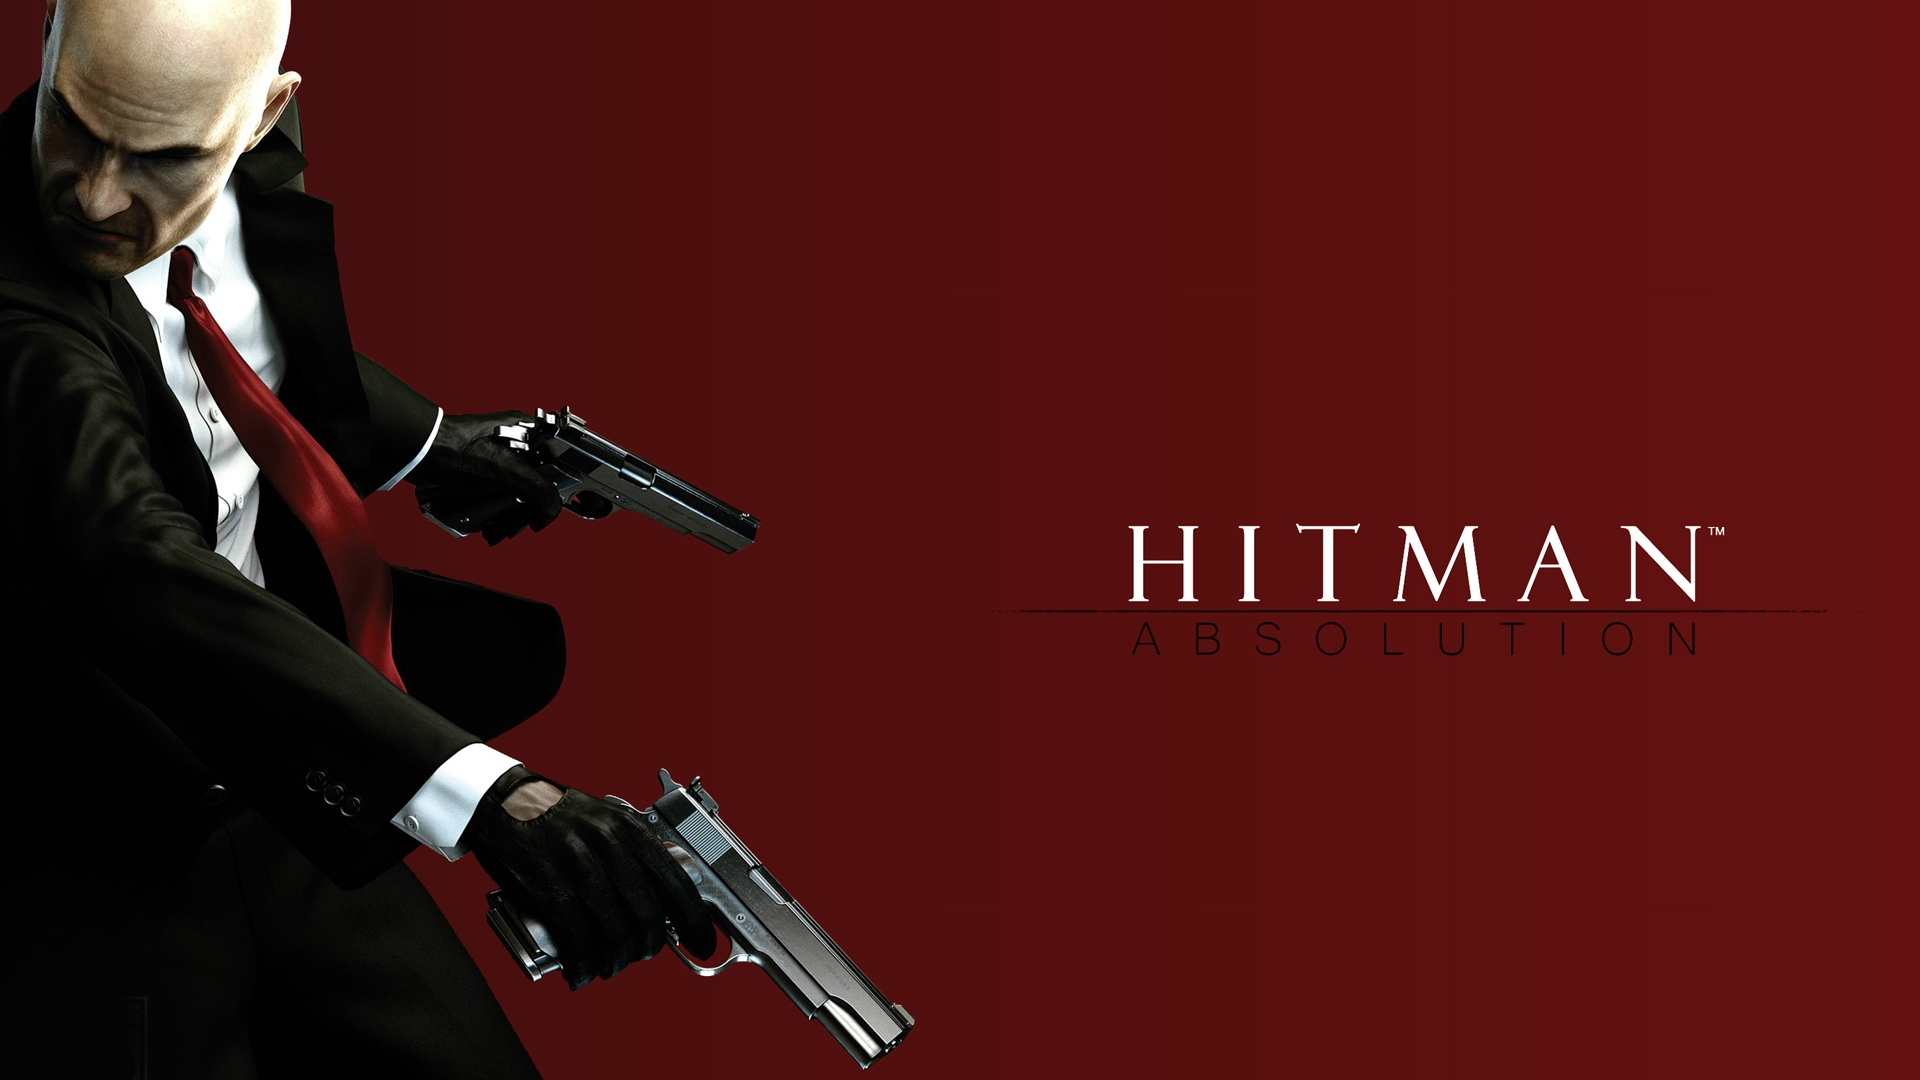 Hitman: Absolution and Deadlight Free On Xbox 360 This Month.